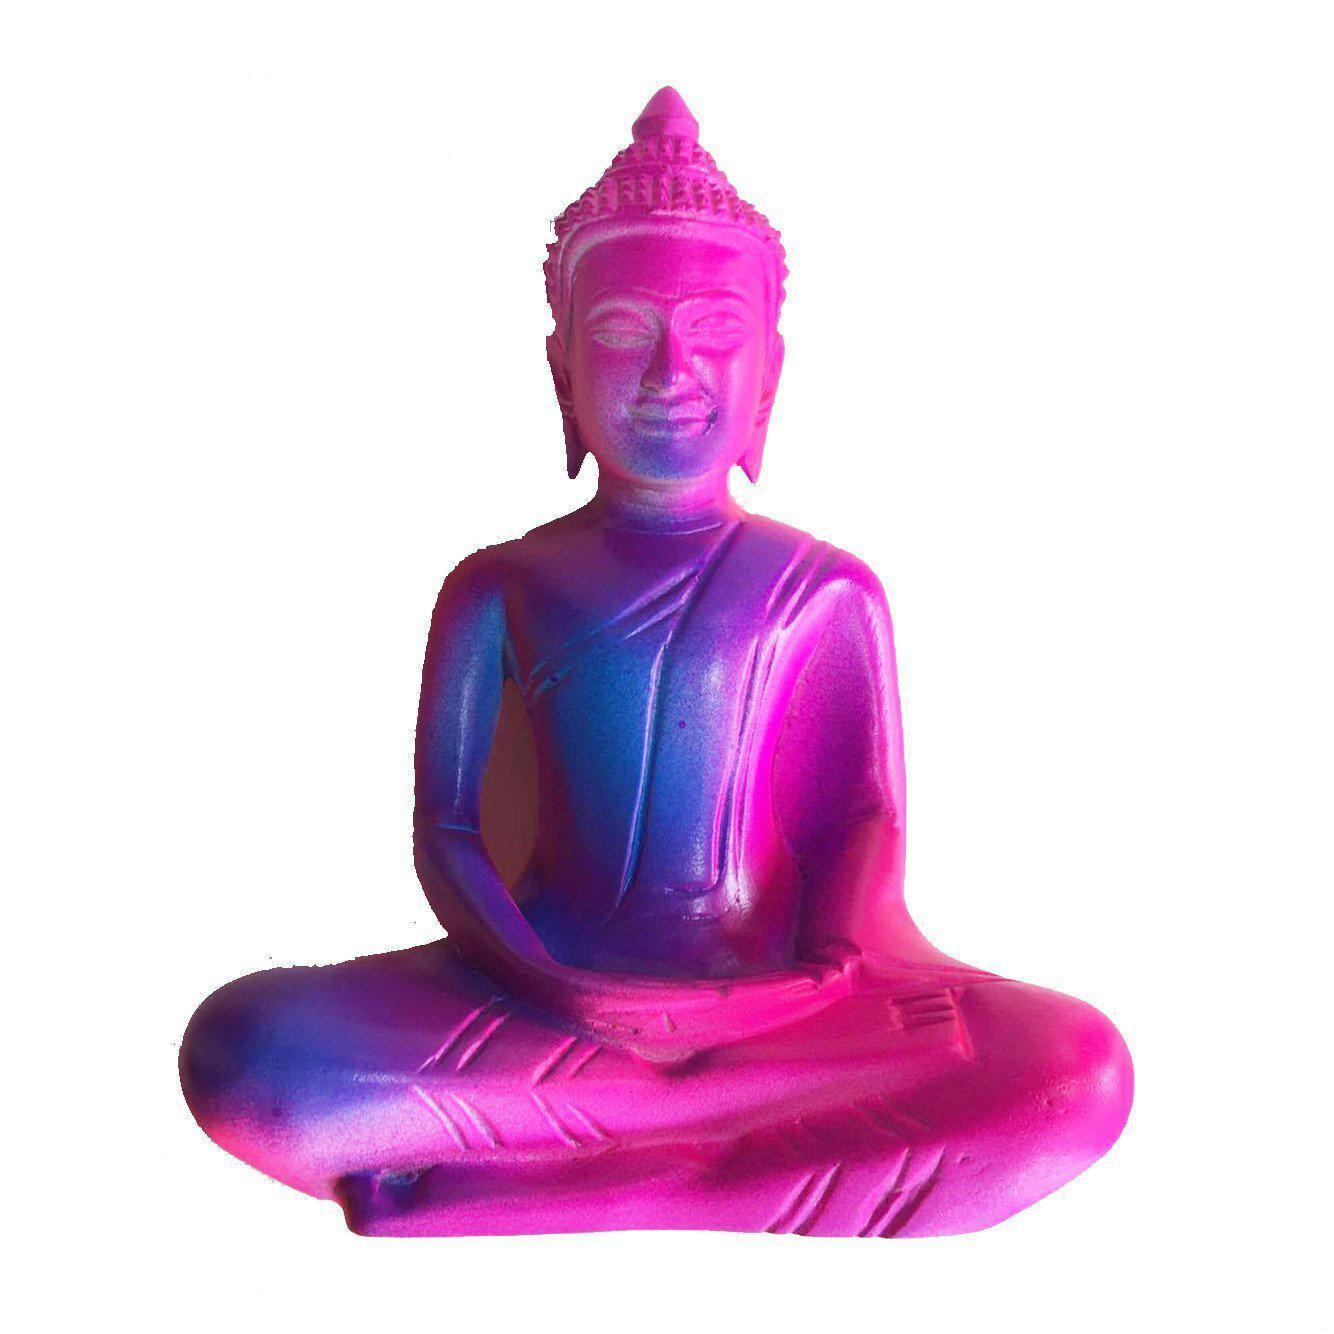 Fluro Mango Wood Seated Buddha in Meditation Pose-WA Gallery-Temples and Markets